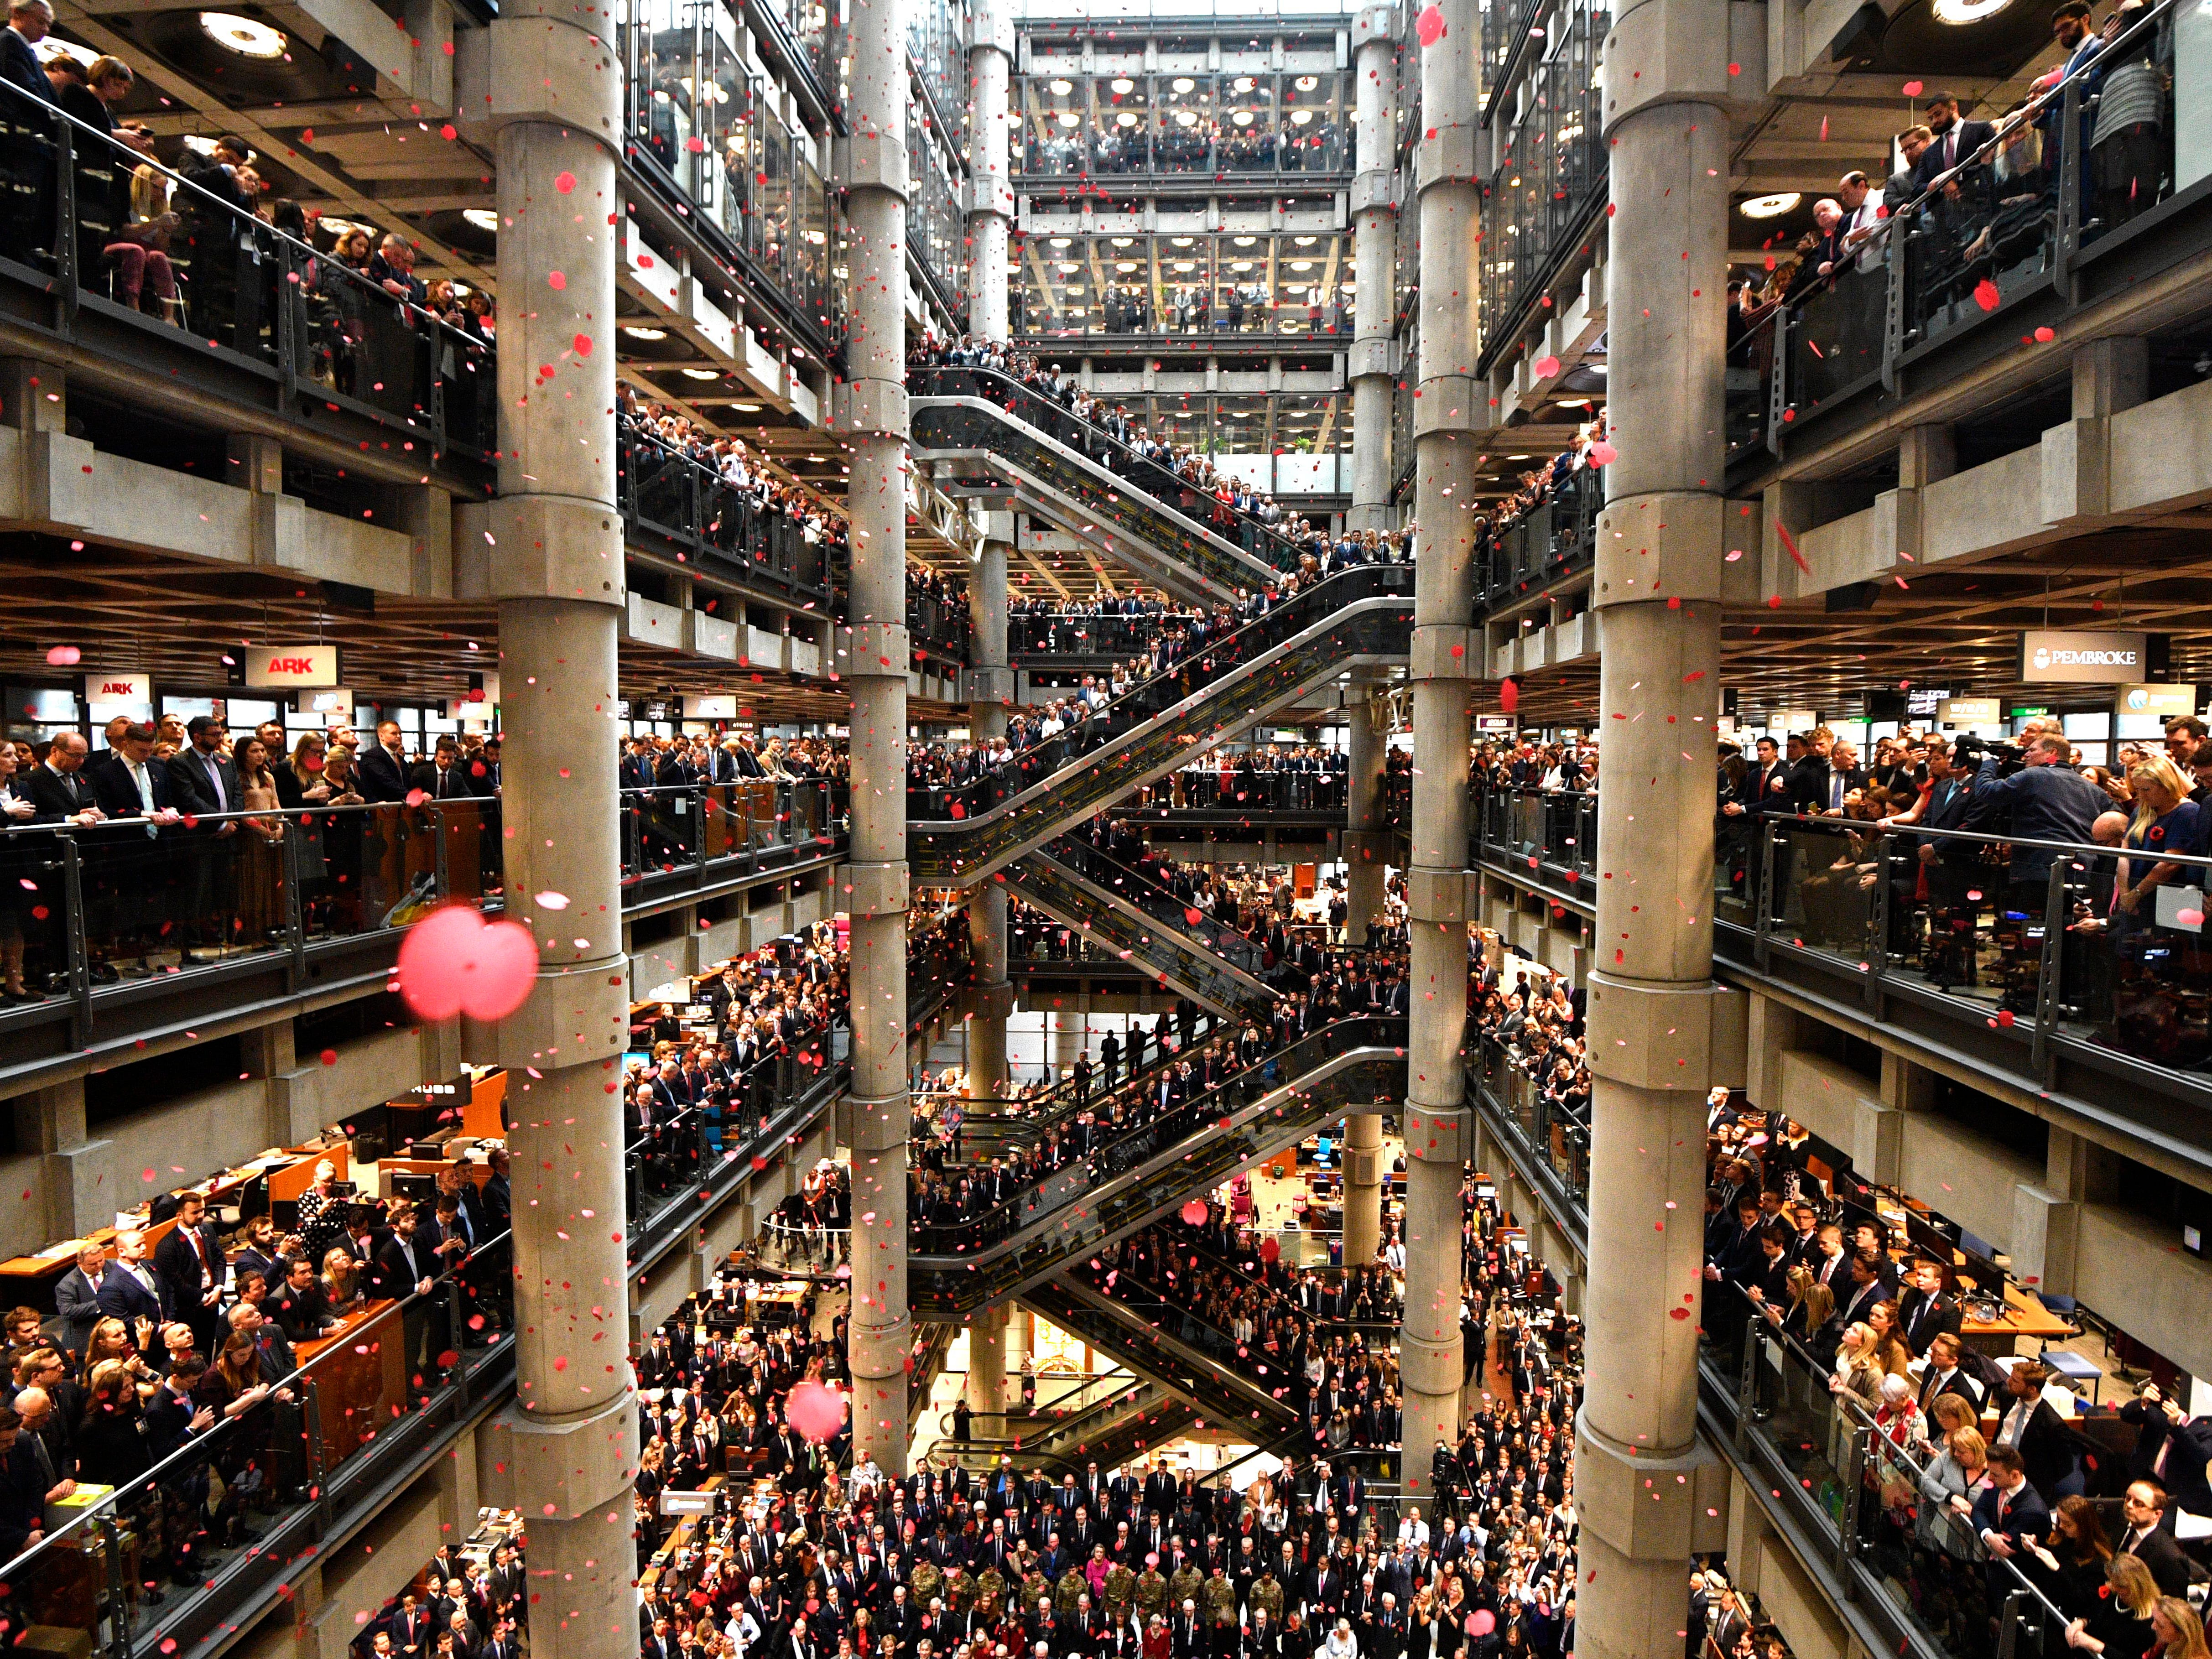 epa07153022 Staff line the atrium as poppies fall during a Armistice commemoration service at Lloyds of London, in the City of London, Britain, 09 November 2018. The 11 November 2018 marks the 100th anniversary of the First World War Armistice with services taking place across the world to commemorate the occasion.  EPA-EFE/NEIL HALL ORG XMIT: NGH01